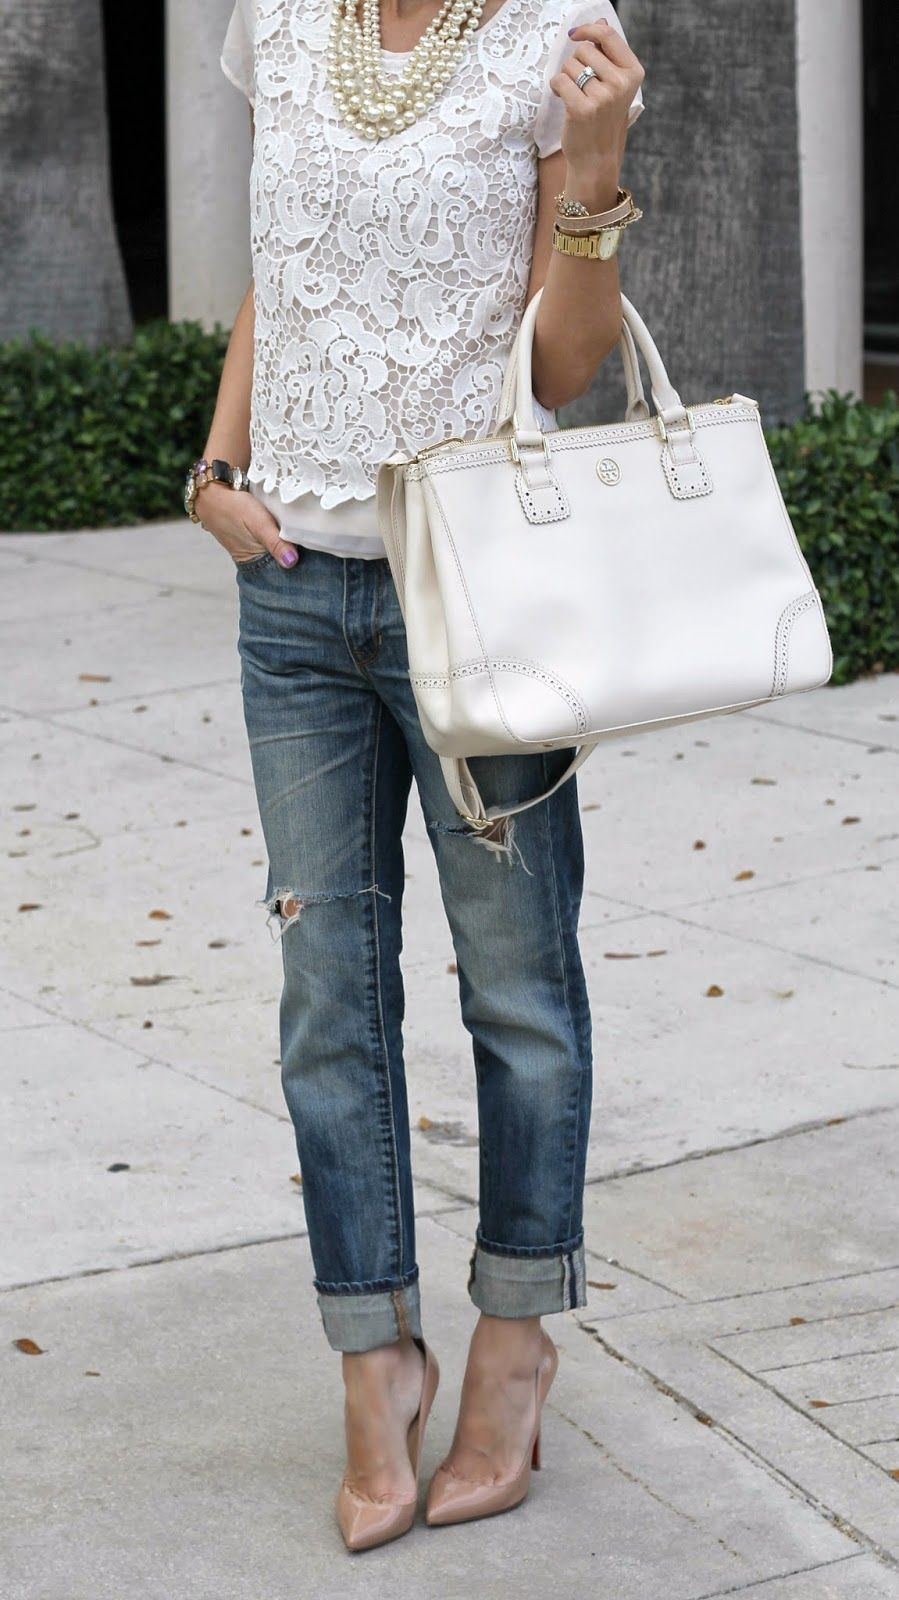 cd5458a864421 I consider this this the perfect outfit: Great fitting jeans, feminine  top,, understated accessories. Casual but ultra classy!